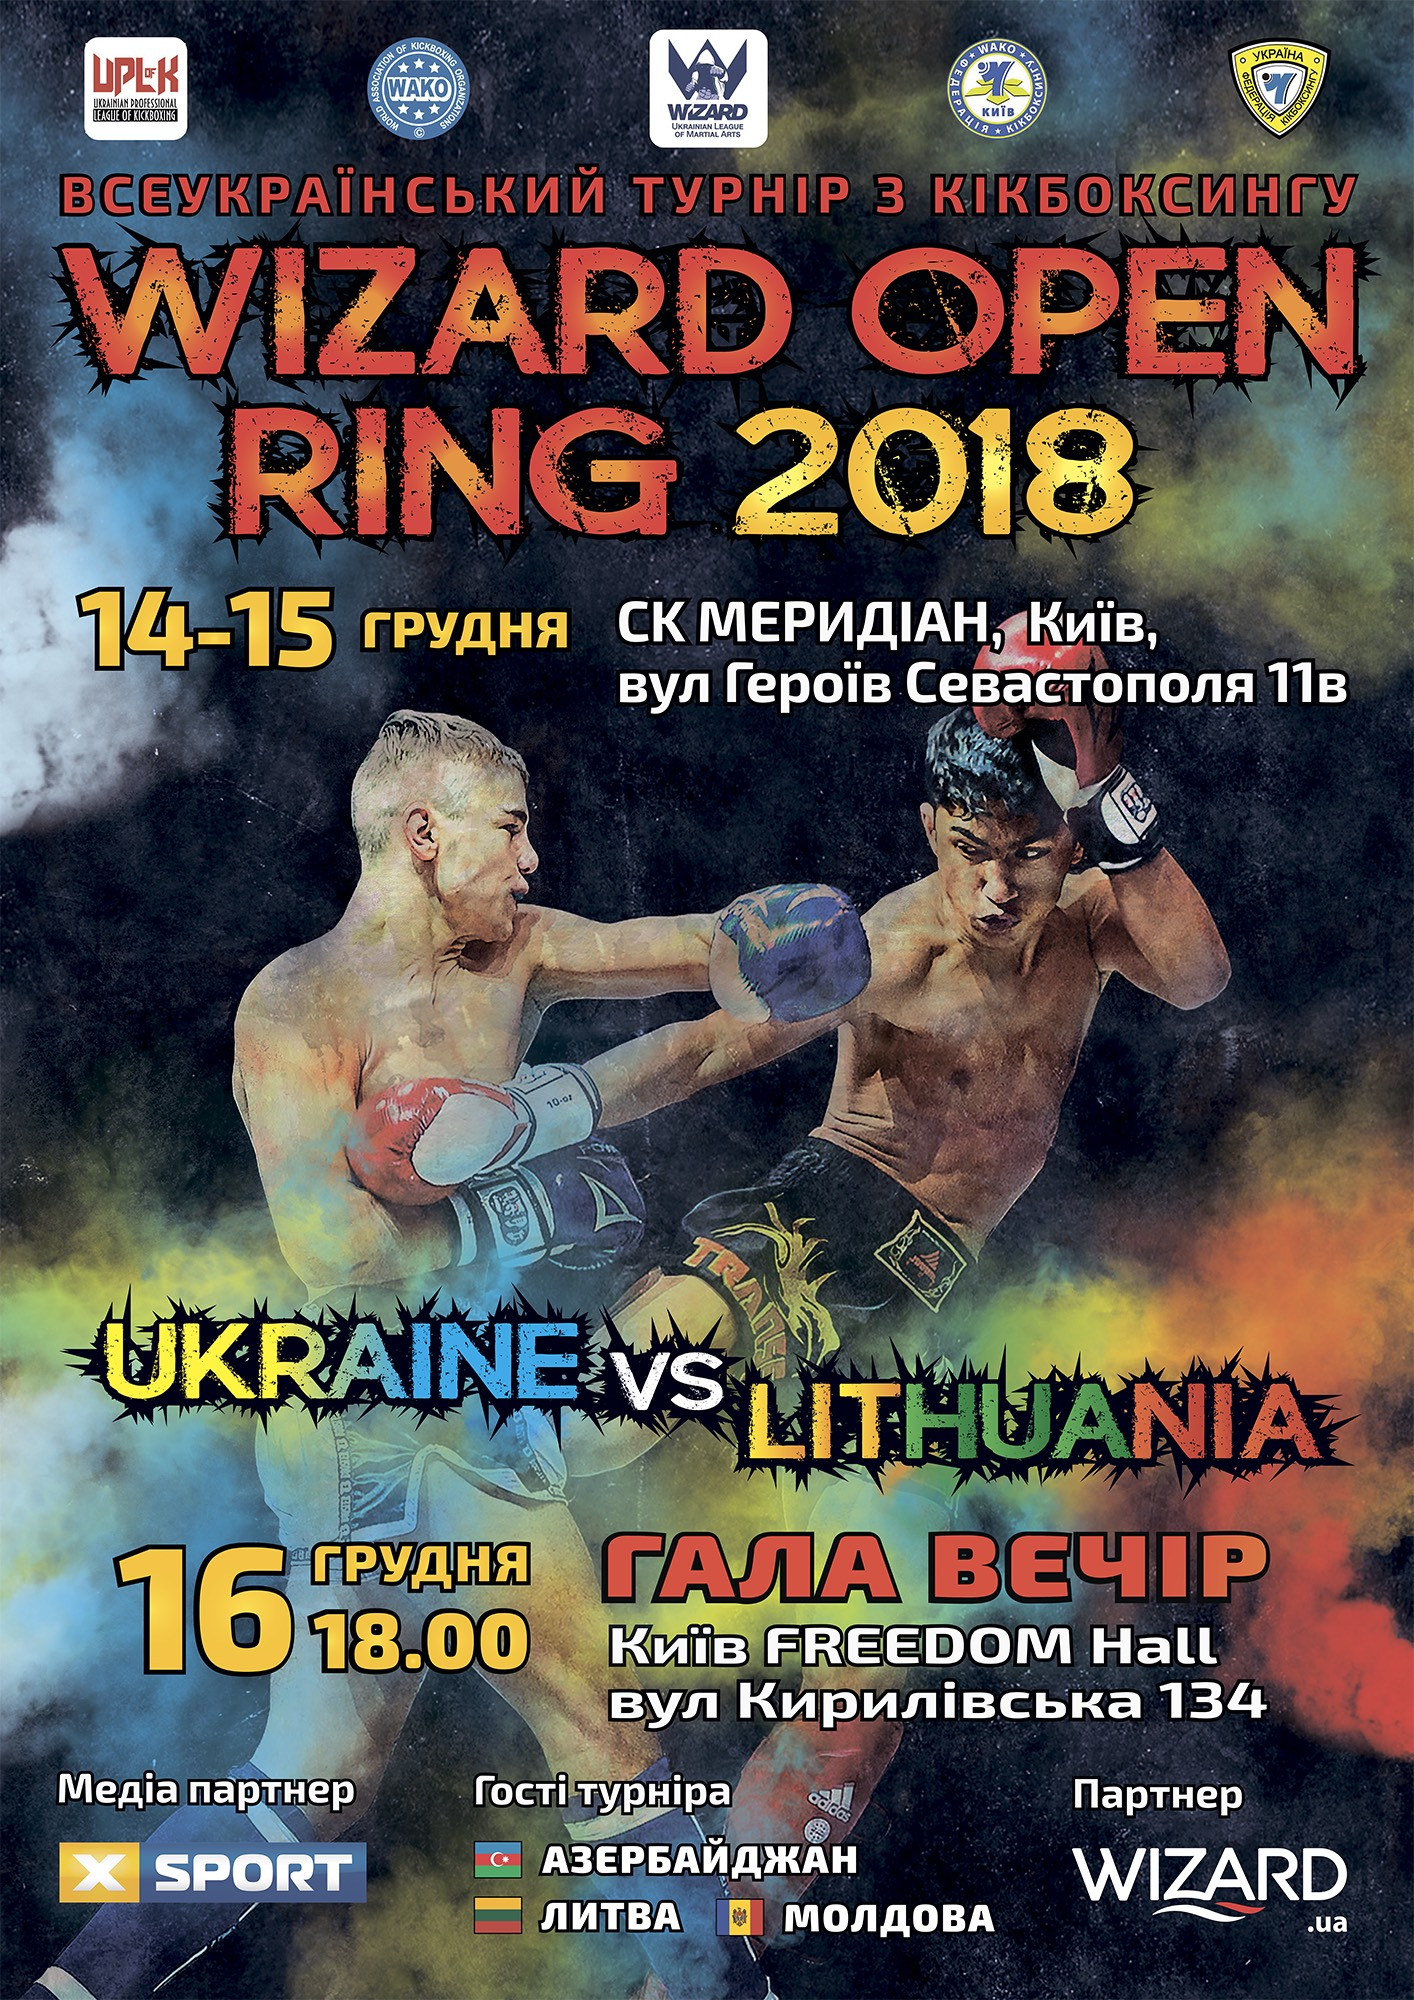 Wizard Open Ring 2018